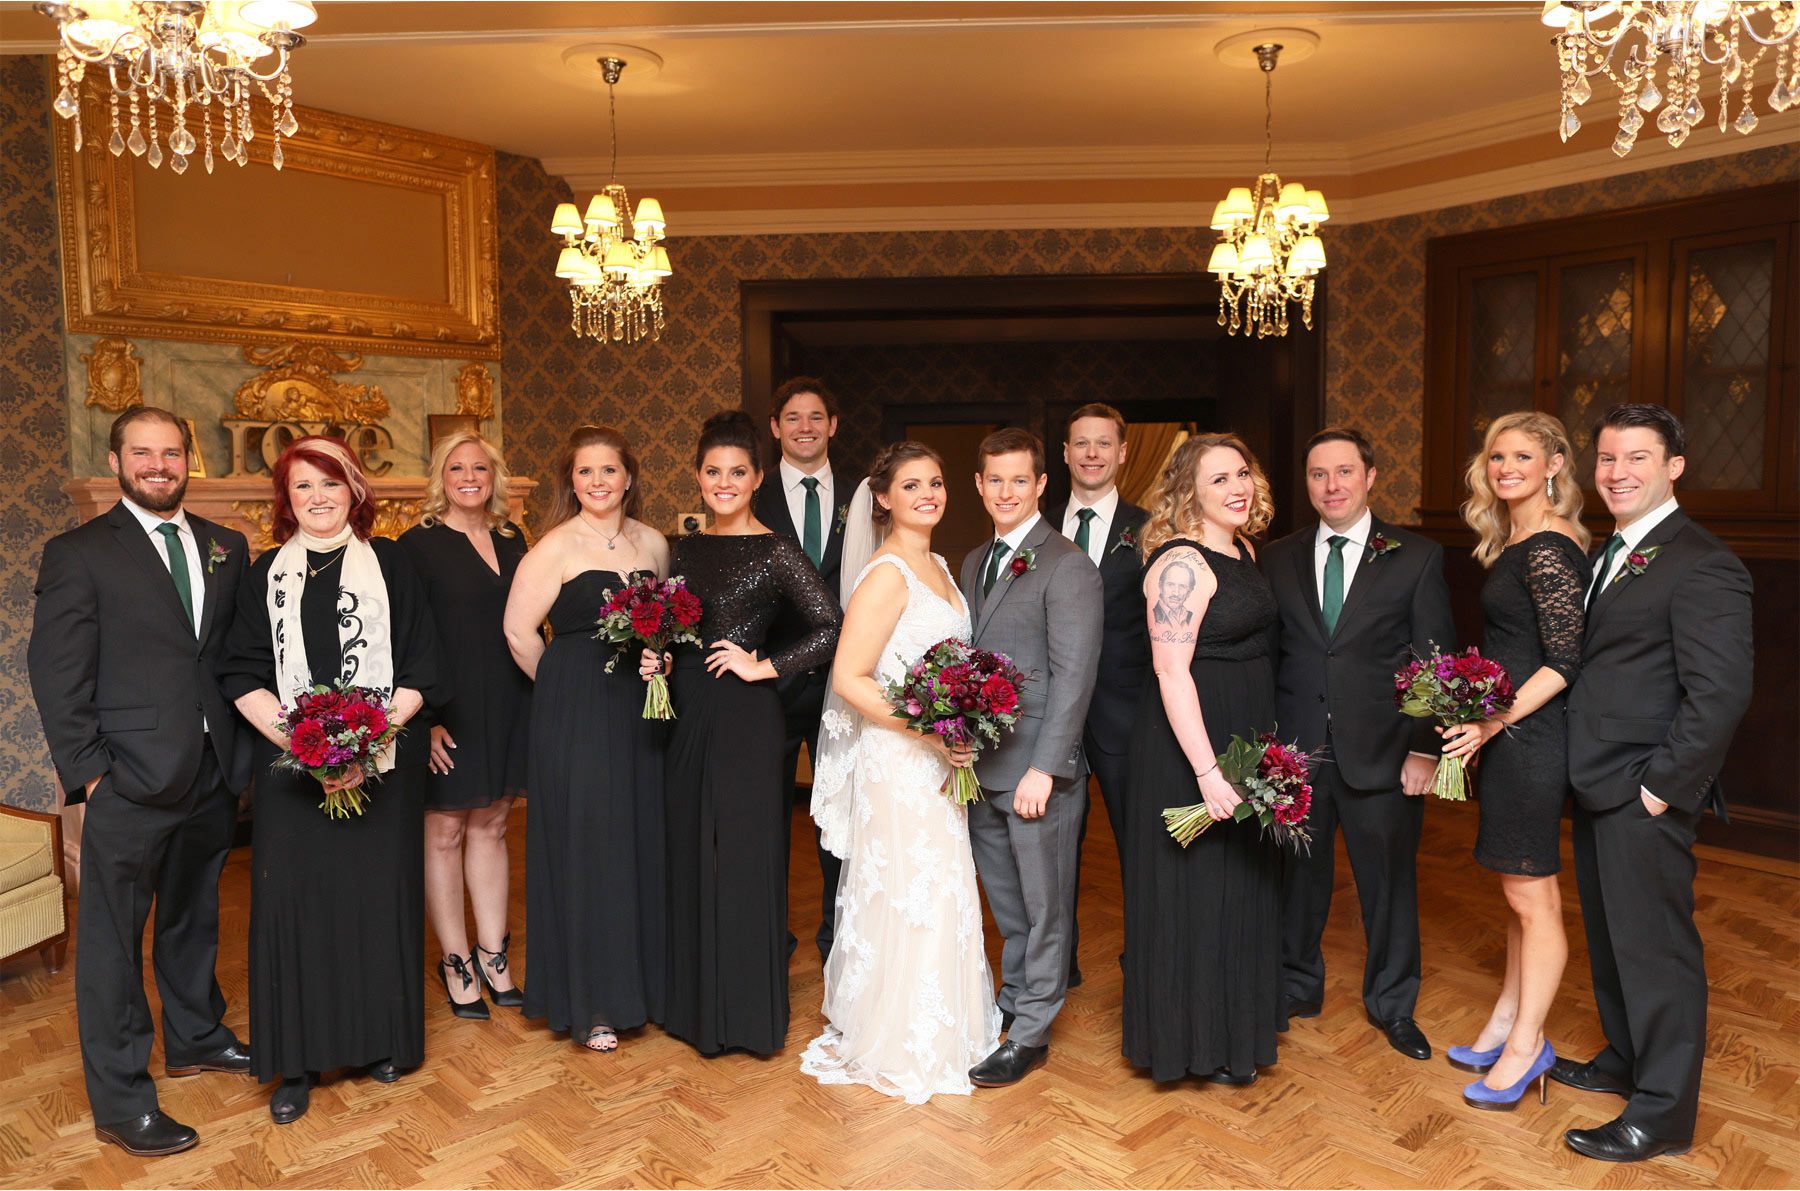 12-Chicago-Illinois-Wedding-Photographer-by-Andrew-Vick-Photography-Winter-Stan-Mansion-Bride-Groom-Bridesmaids-Groomsmen-Flowers-Colleen-and-Mike.jpg